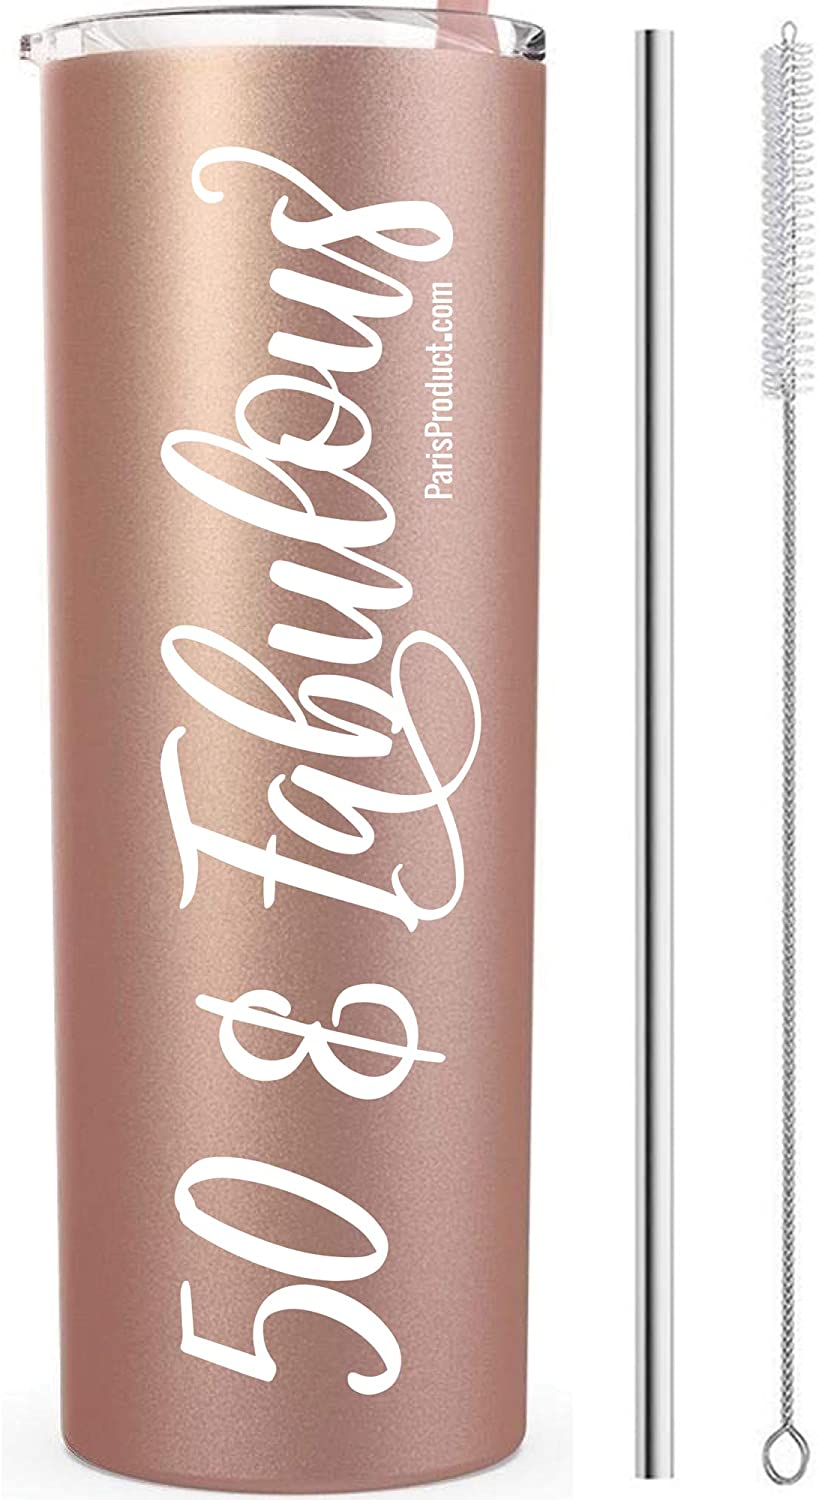 50 & Fabulous 20 Oz Stainless Steel Tumbler with straw | 50th Birthday Decorations For Women| 50th Birthday Gifts For Women| 50th Birthday Gifts| Insulated Wine Tumbler with lids| Coffee Tumbler Fifty